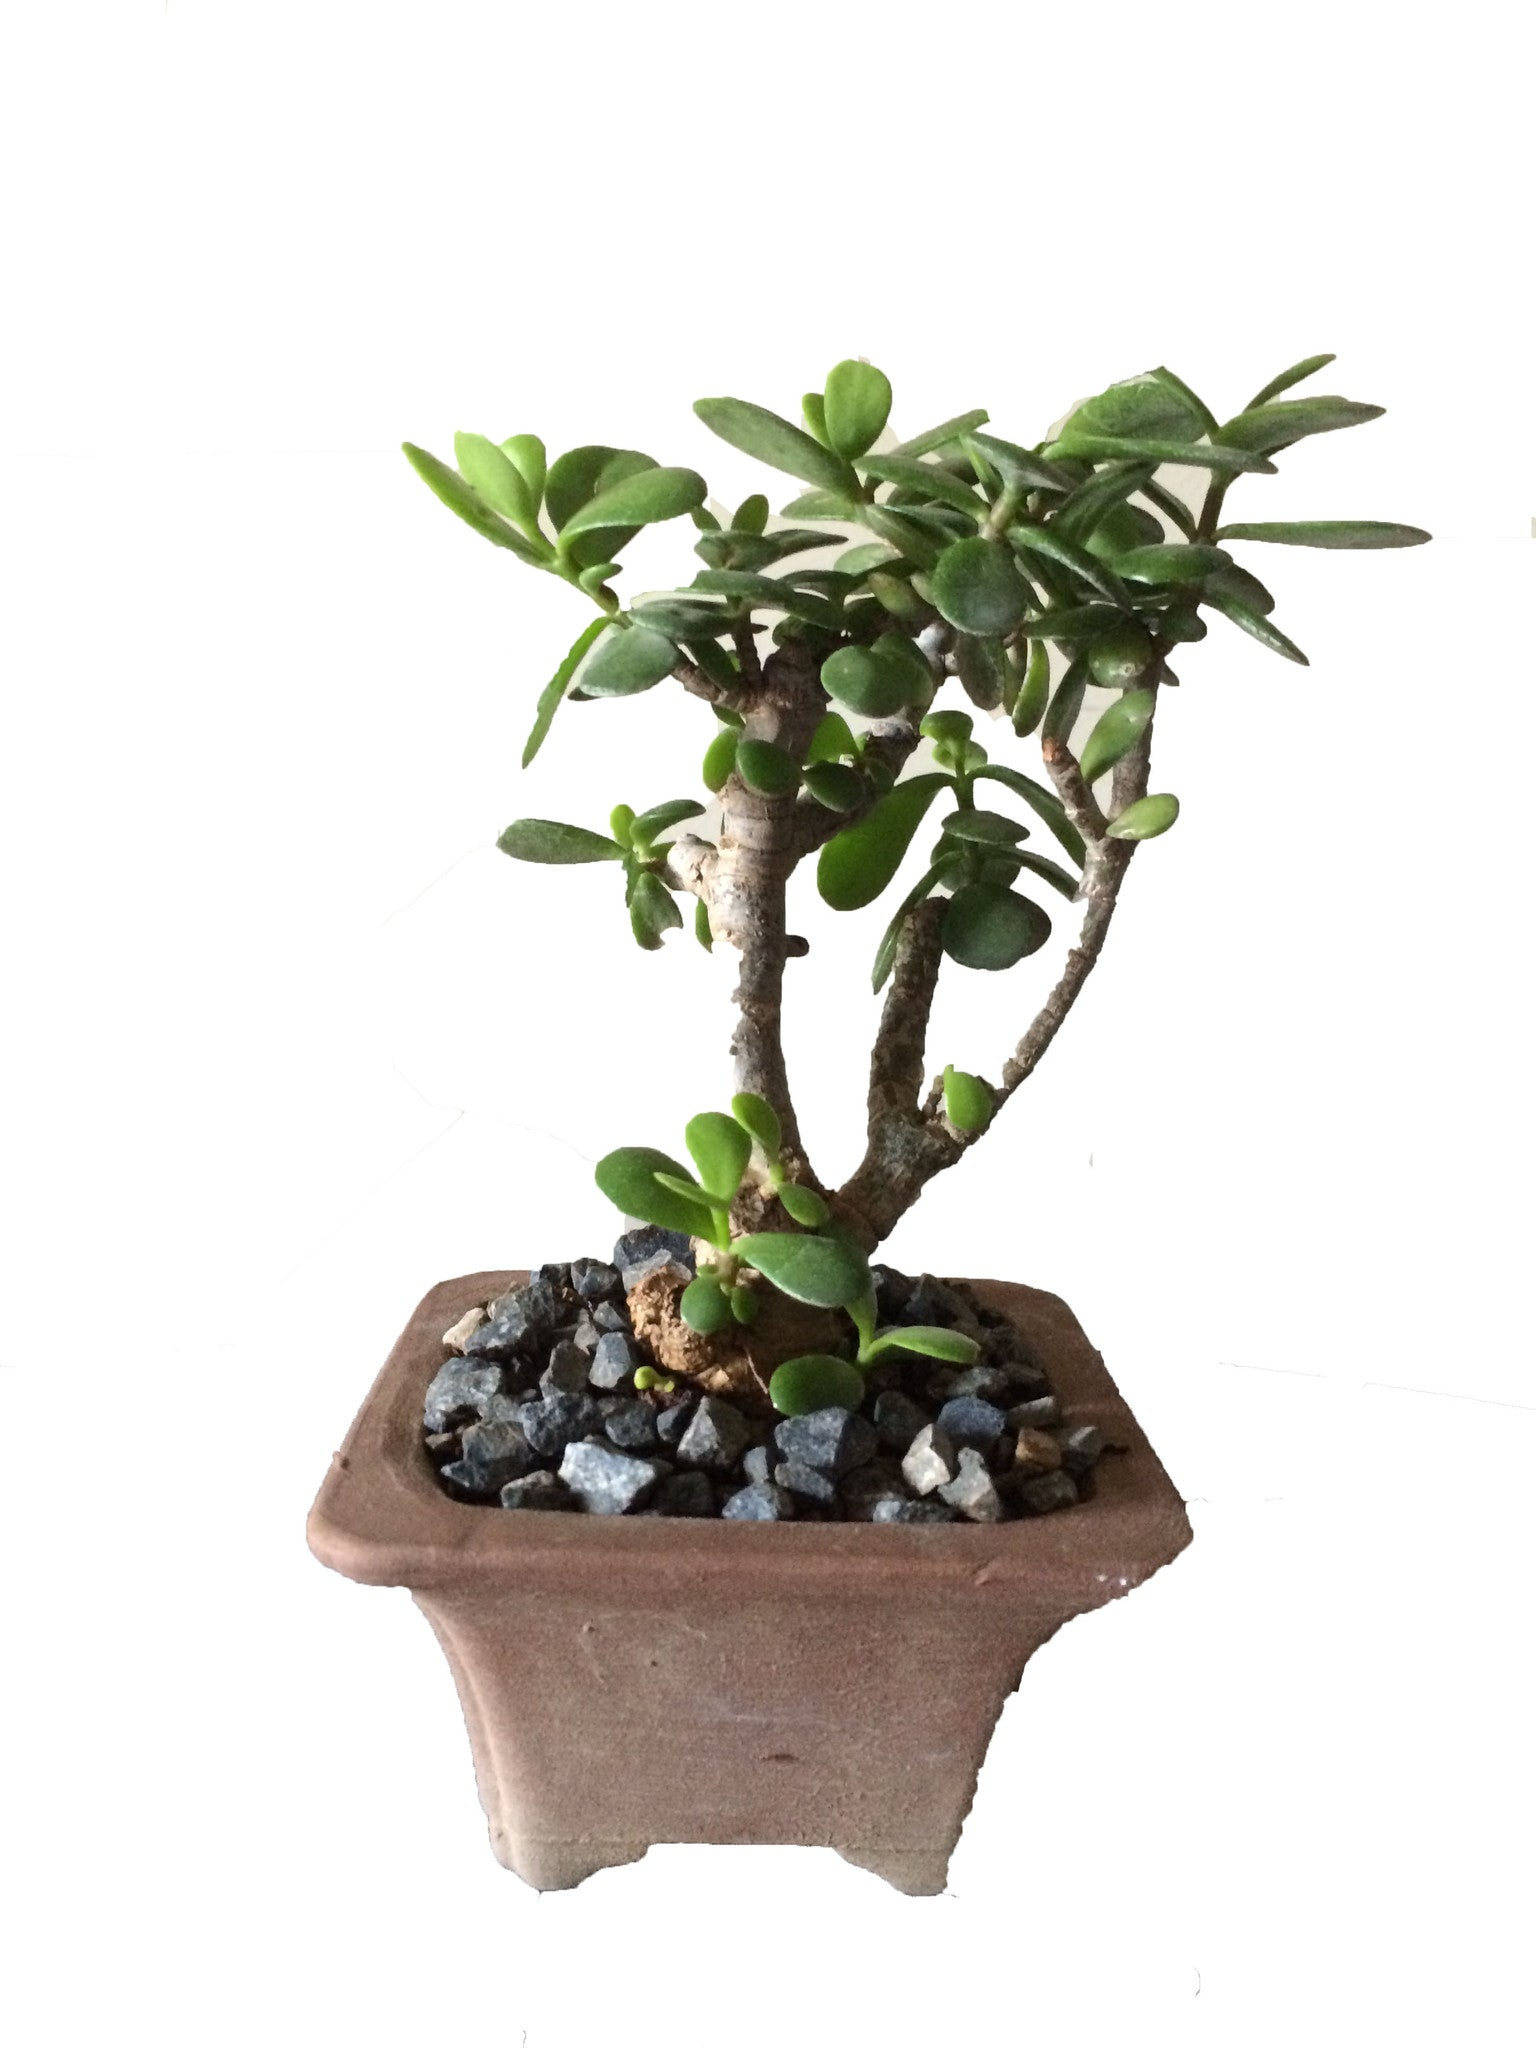 Bonsai Portulacaria Afra (Money Tree) - iloveza.com - 1